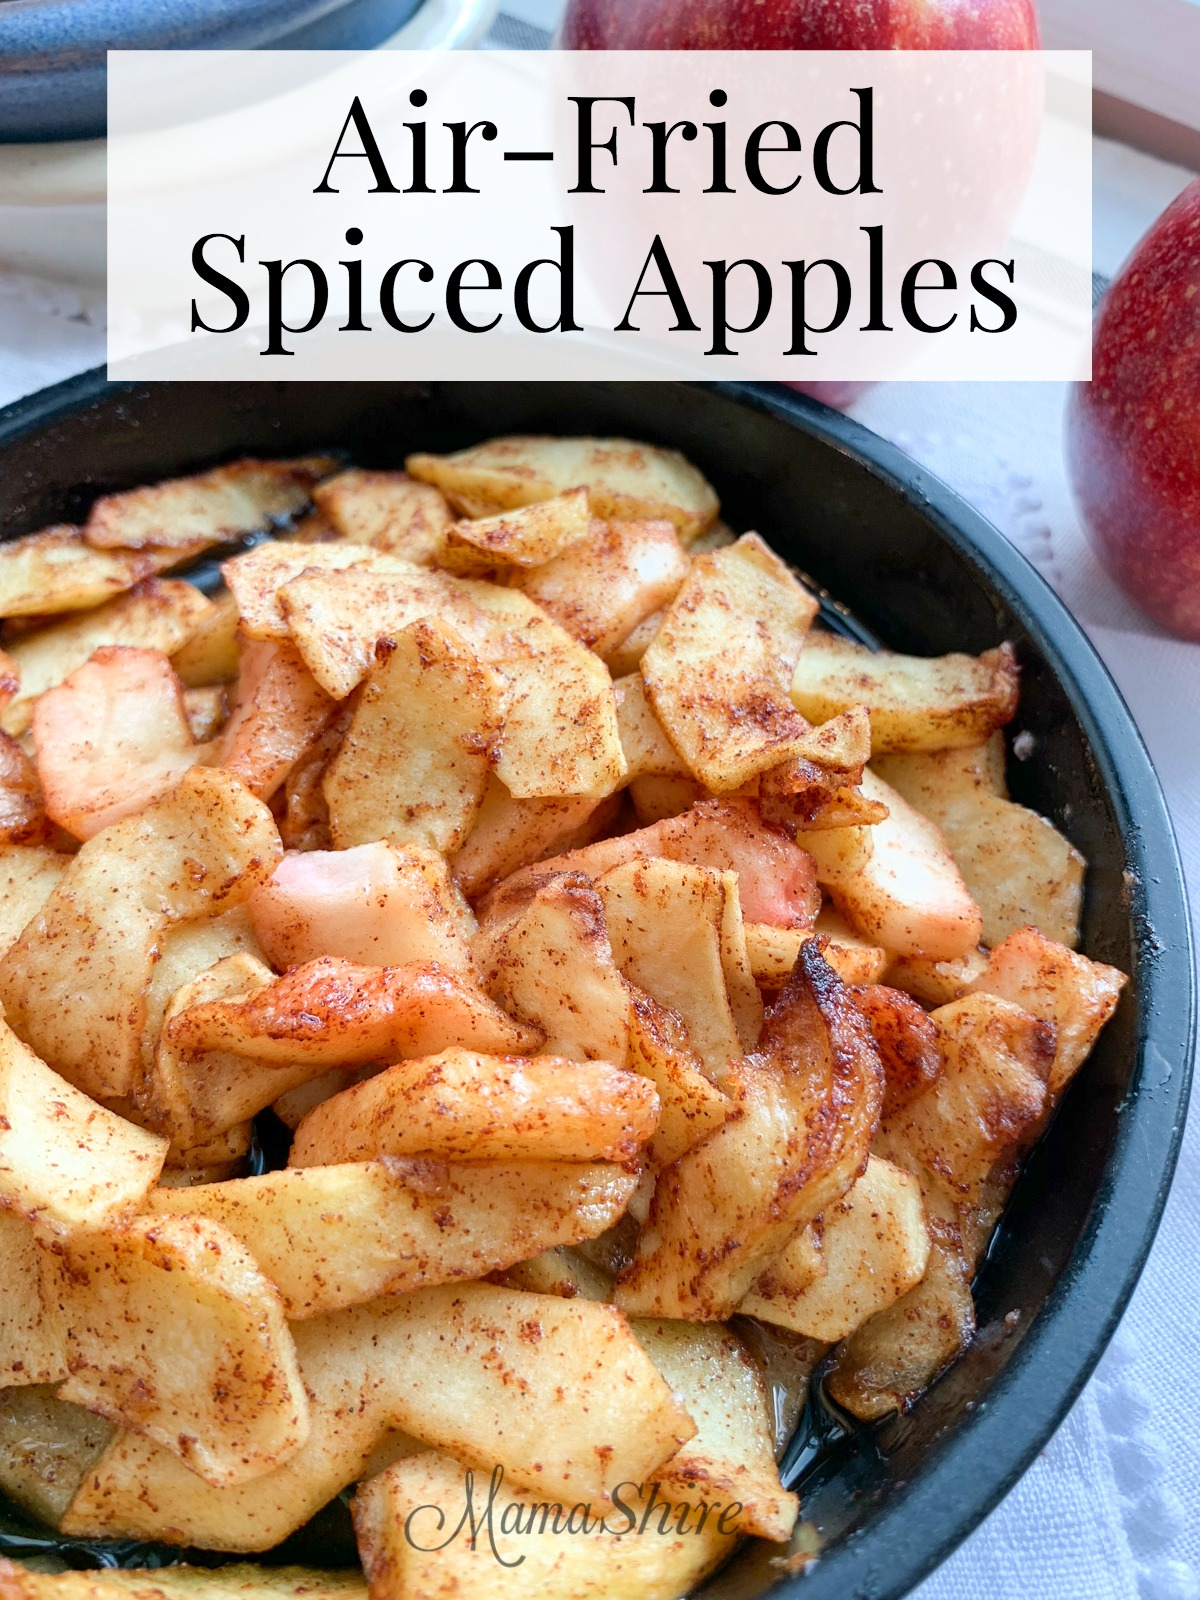 Apples sliced and fried in an air fryer. Easy to make Air-fried Spiced Apples.